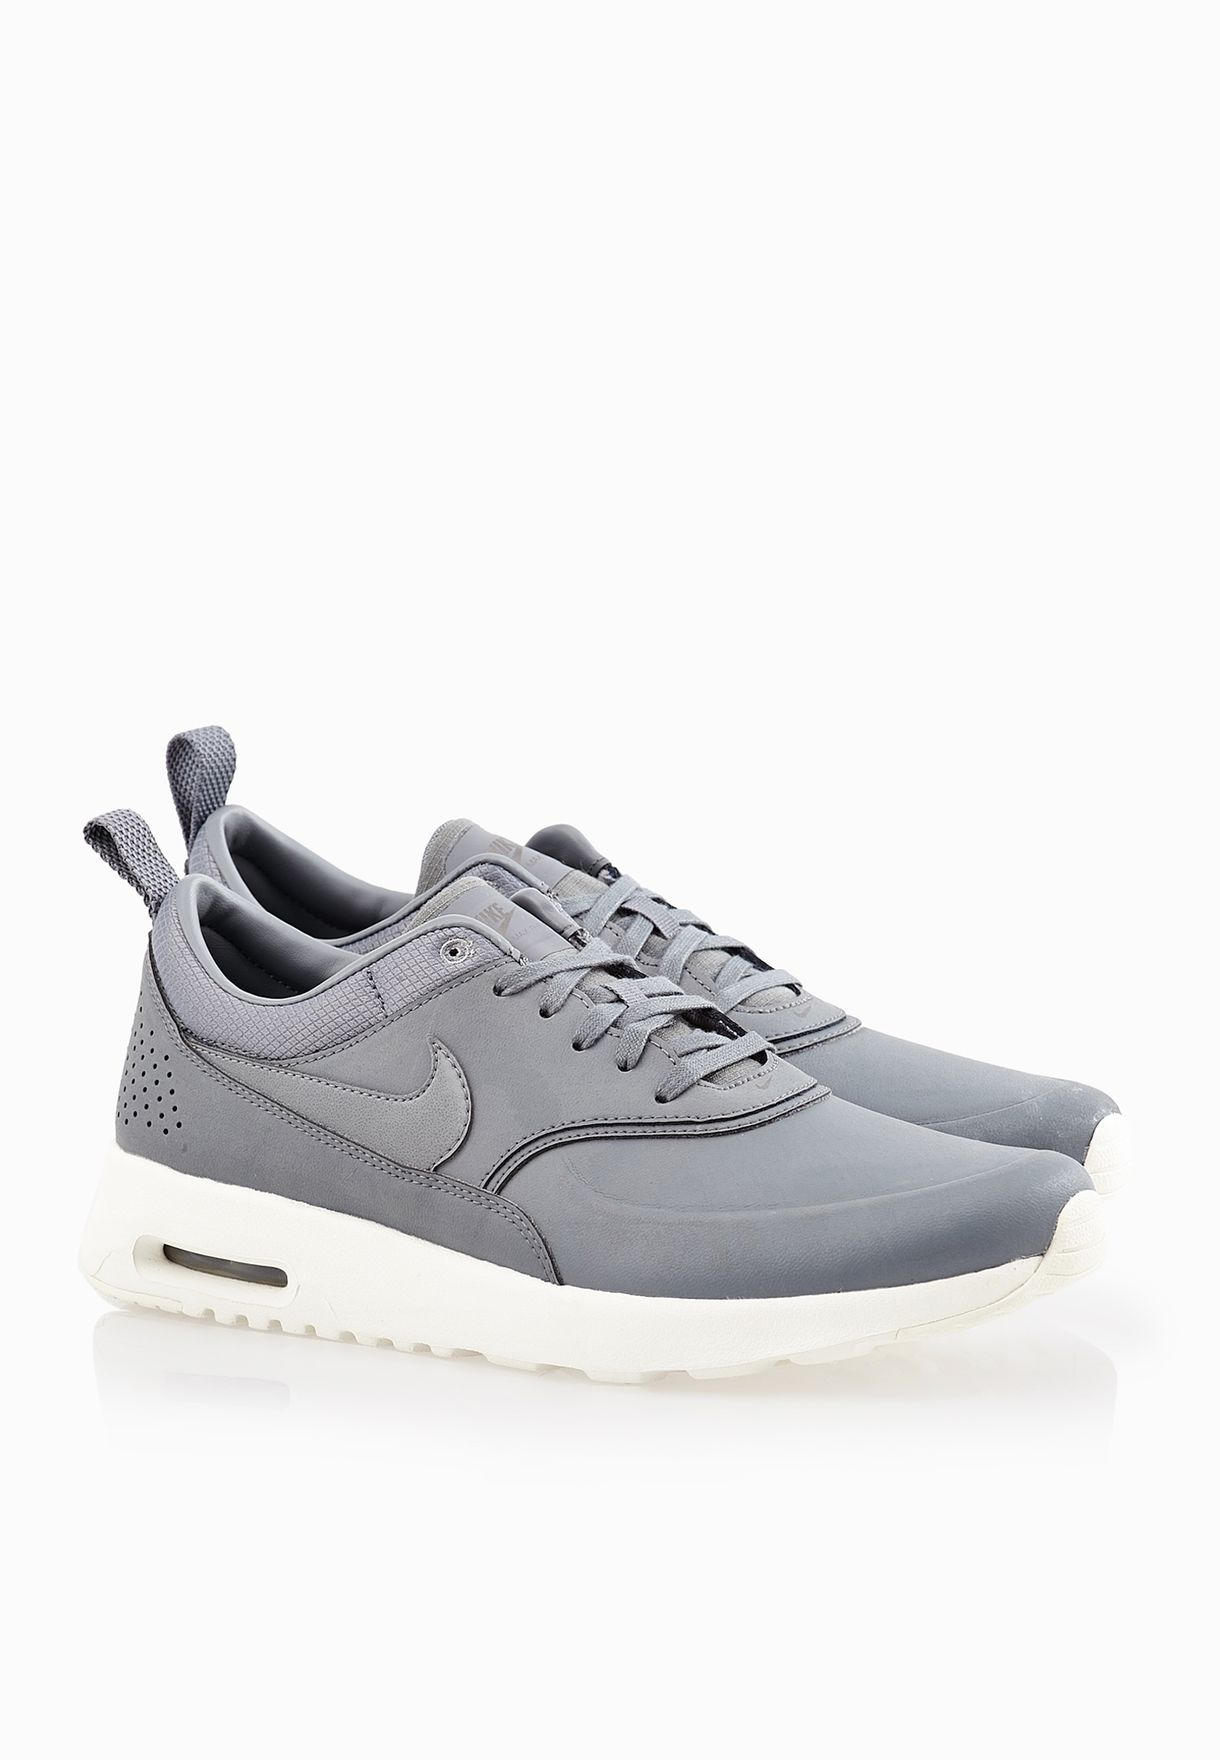 huge discount 24f9d 71658 Shop Nike grey Air Max Thea Prm 616723-008 for Women in Globally ...